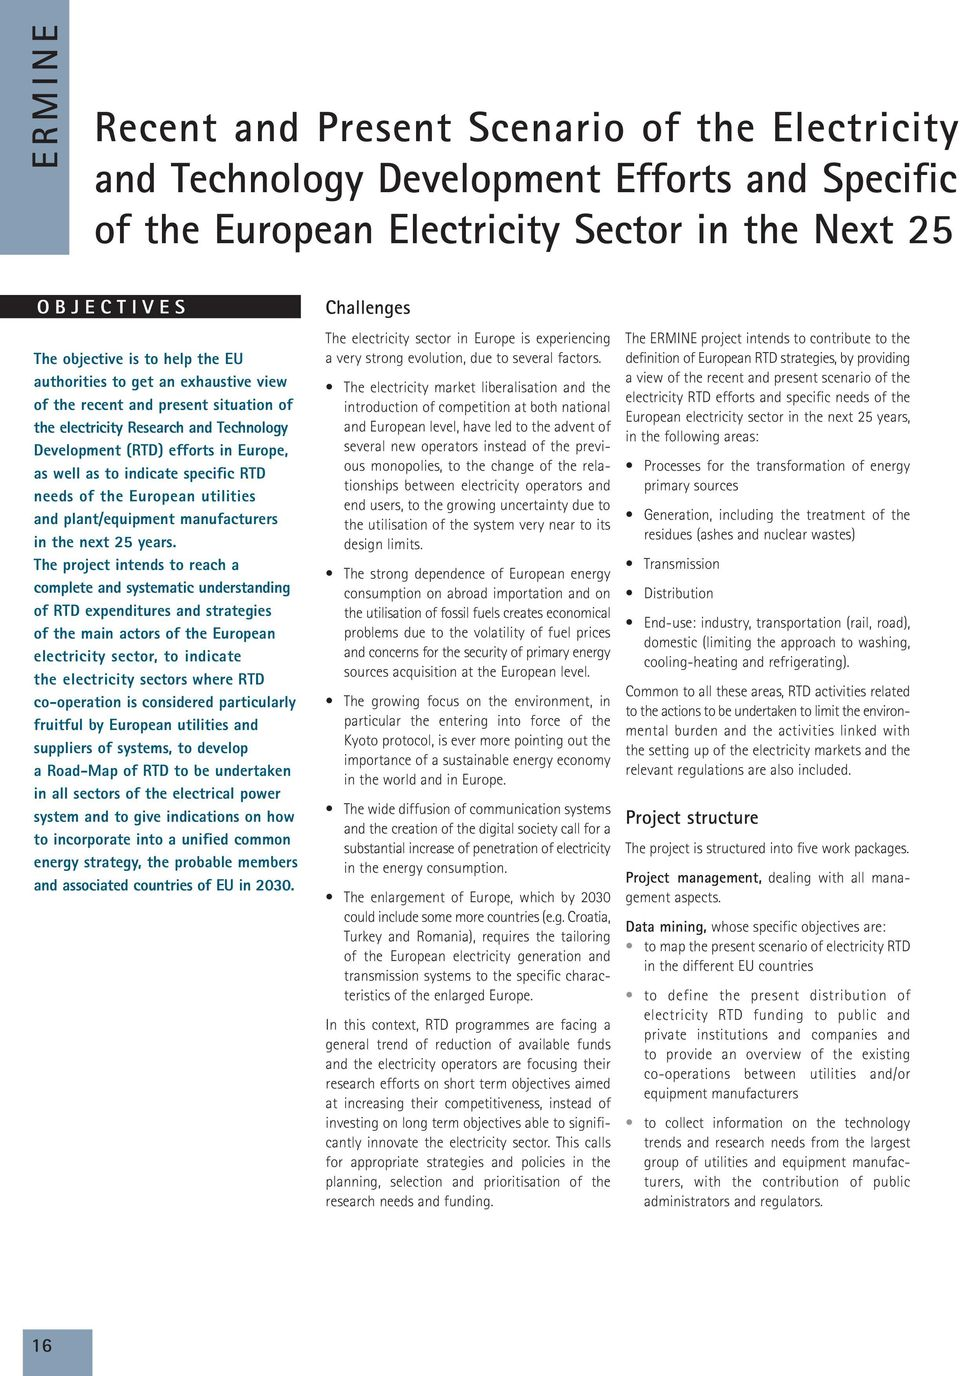 the European utilities and plant/equipment manufacturers in the next 25 years.